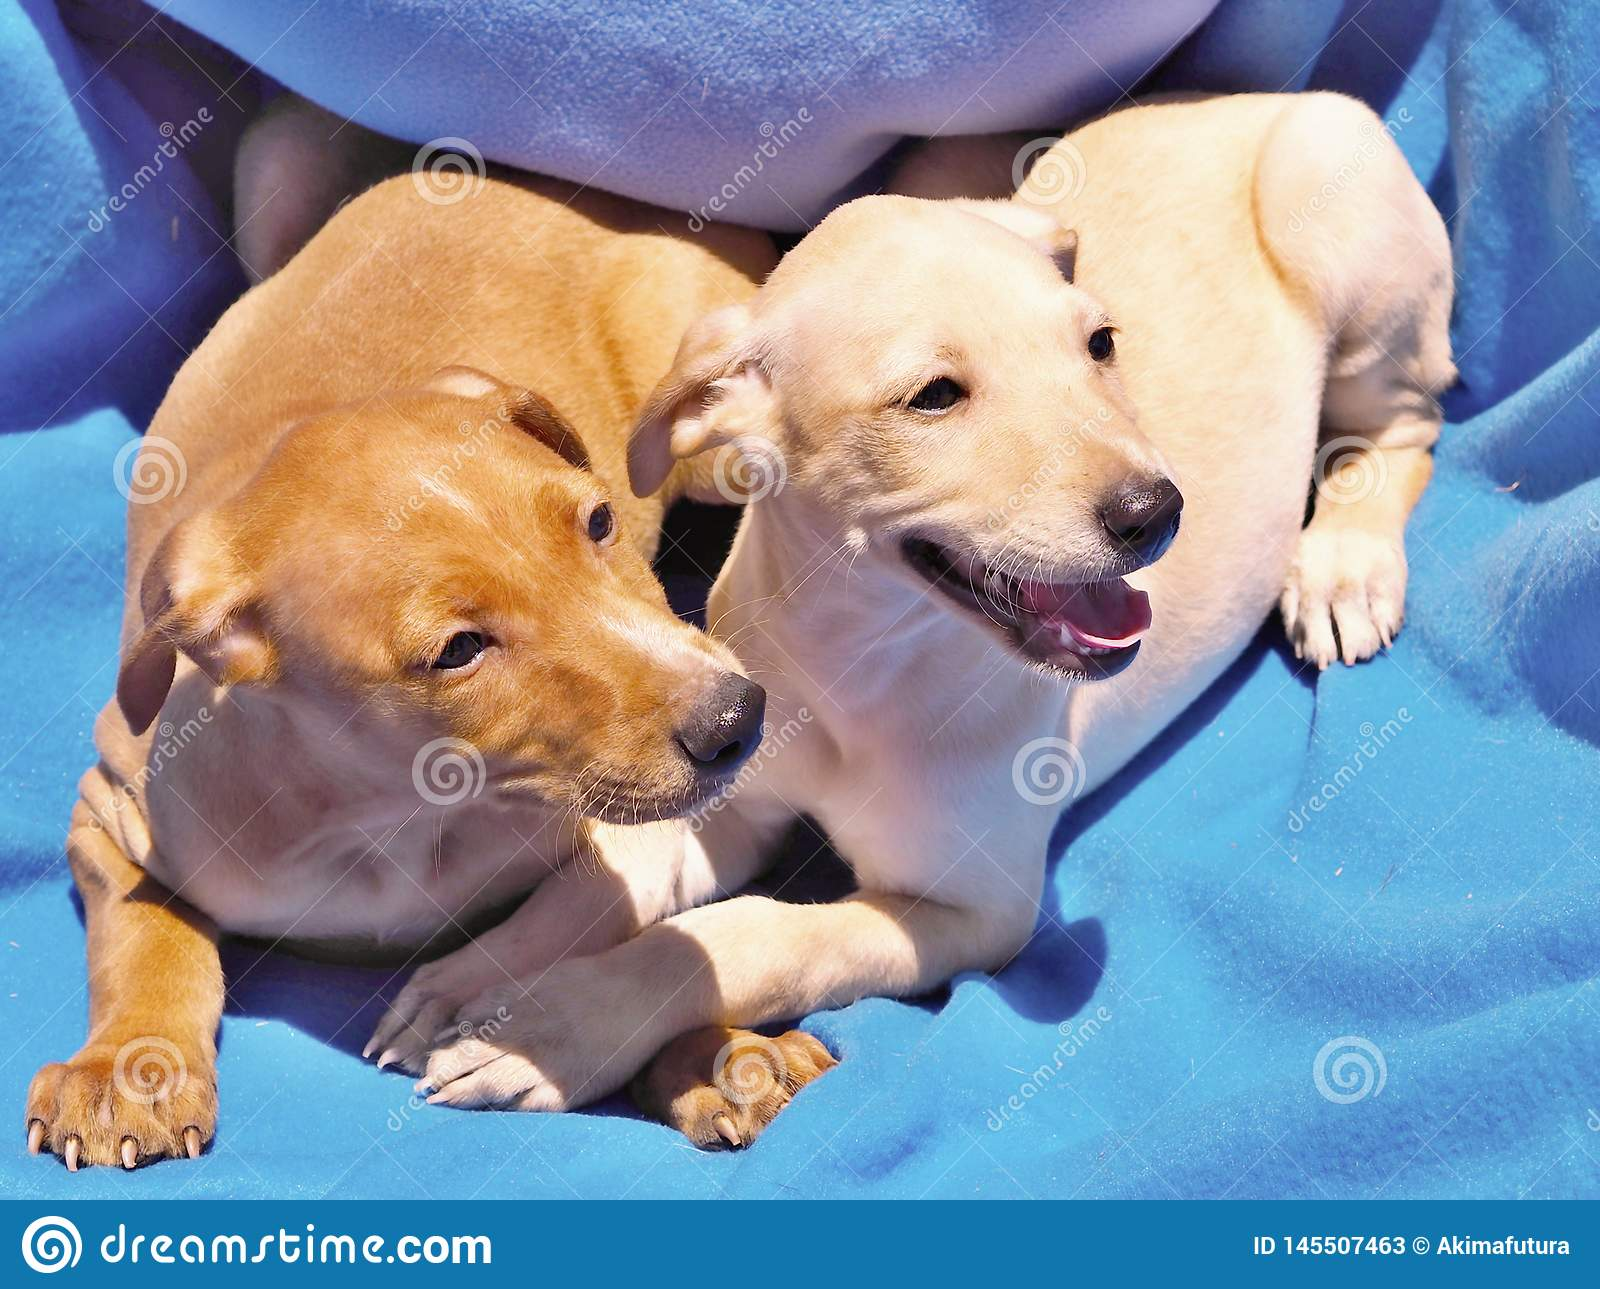 Two Labrador Puppies Clinging To Each Other Lie On A Blue Blanket In The Sun Stock Image Image Of Blue Left 145507463